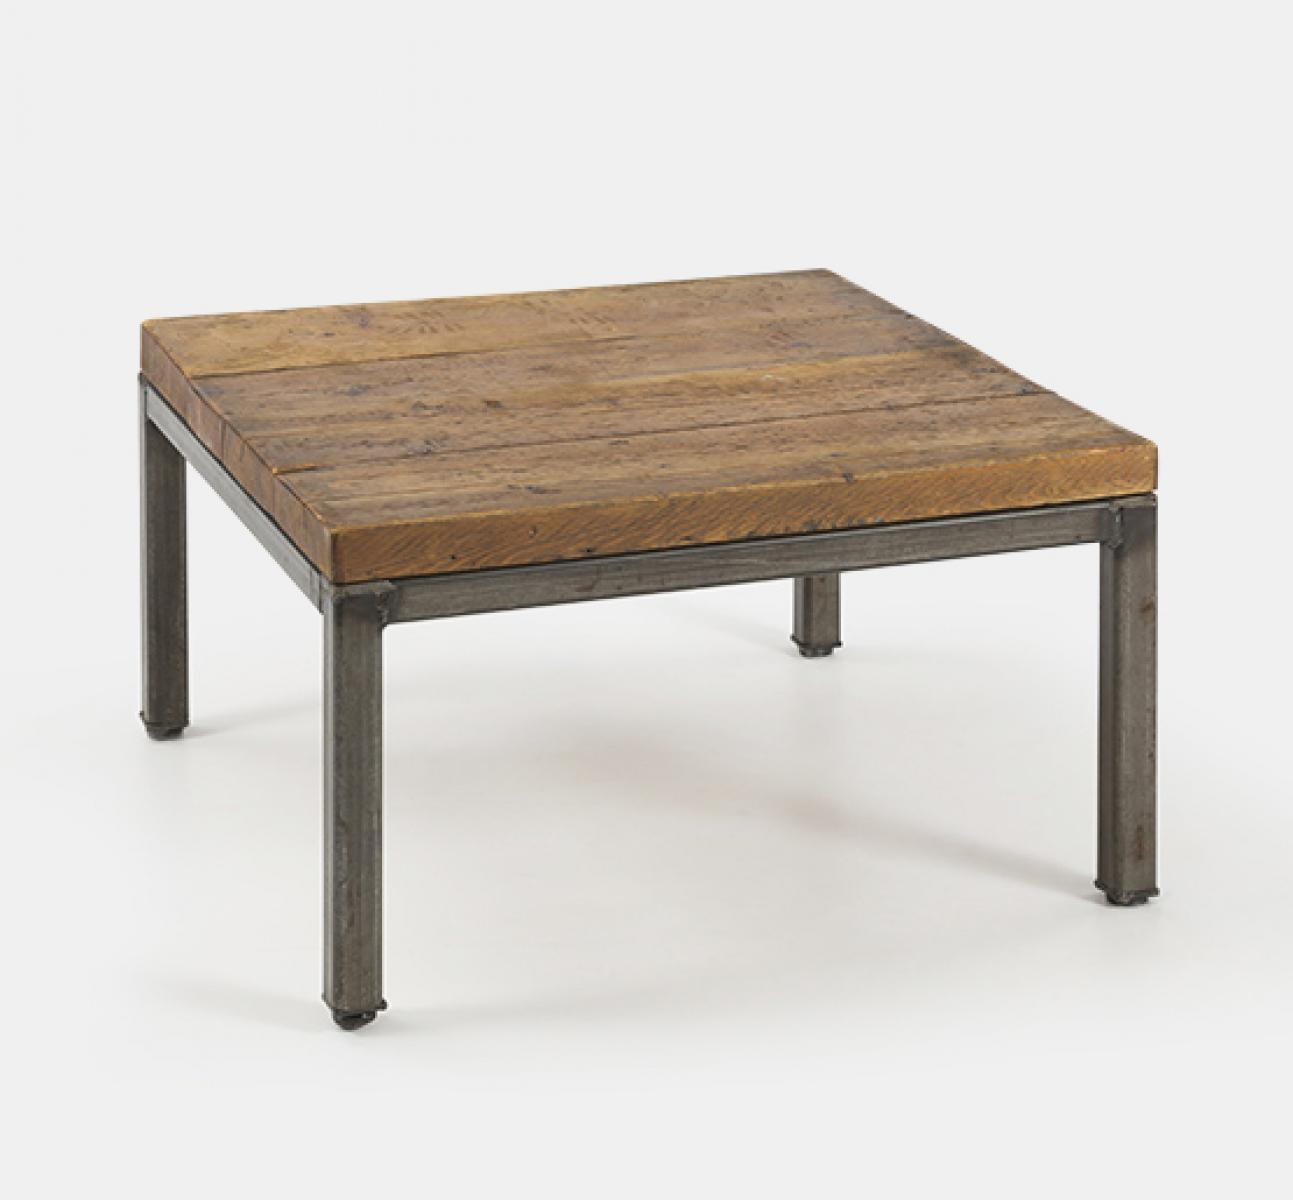 Quay coffee table uhs for Furniture quay